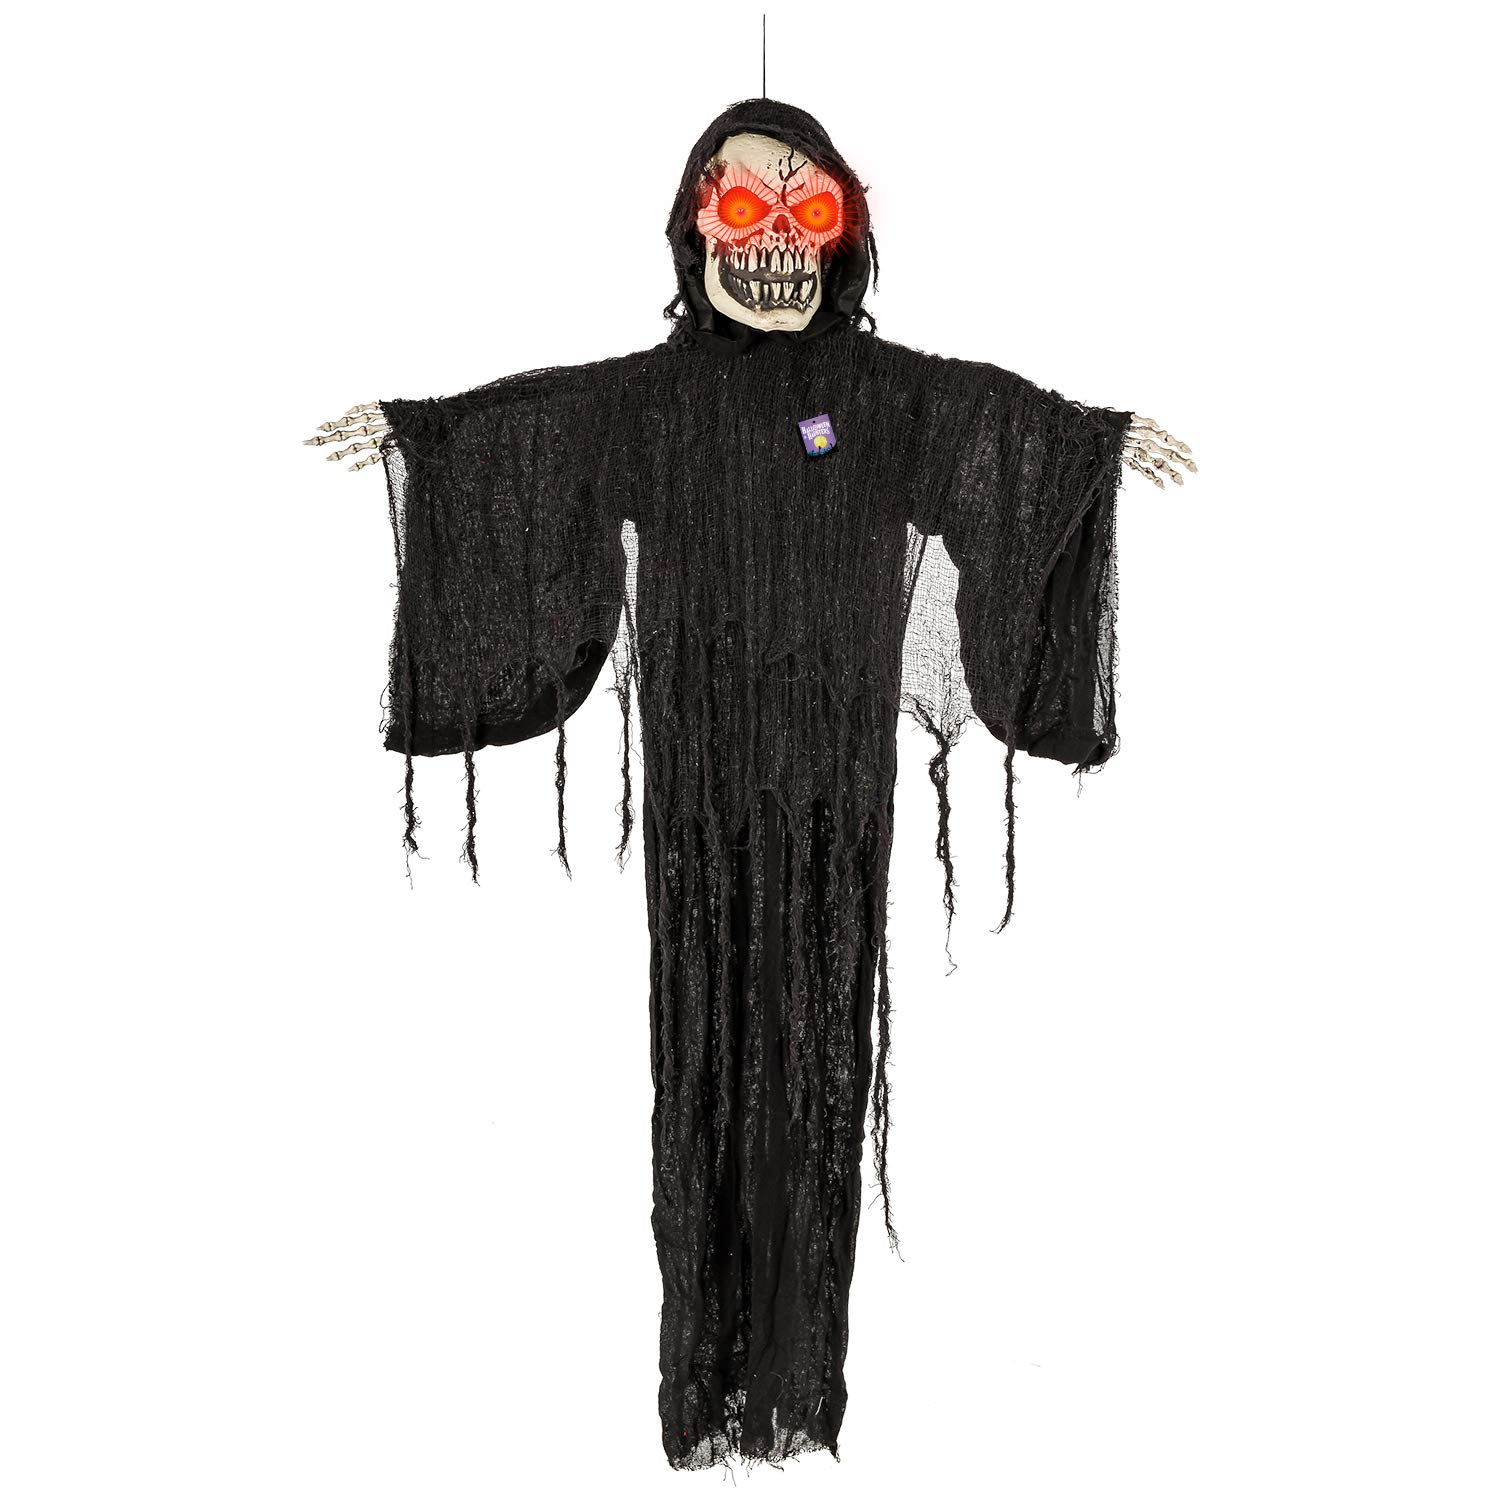 Halloween Haunters Animated Hanging Life-Size Scary Zombie Skull Reaper Speaking with Moving Arms Prop Decoration - Evil Skeleton Face with Red Light Up Eyes - Haunted House Graveyard Party Display